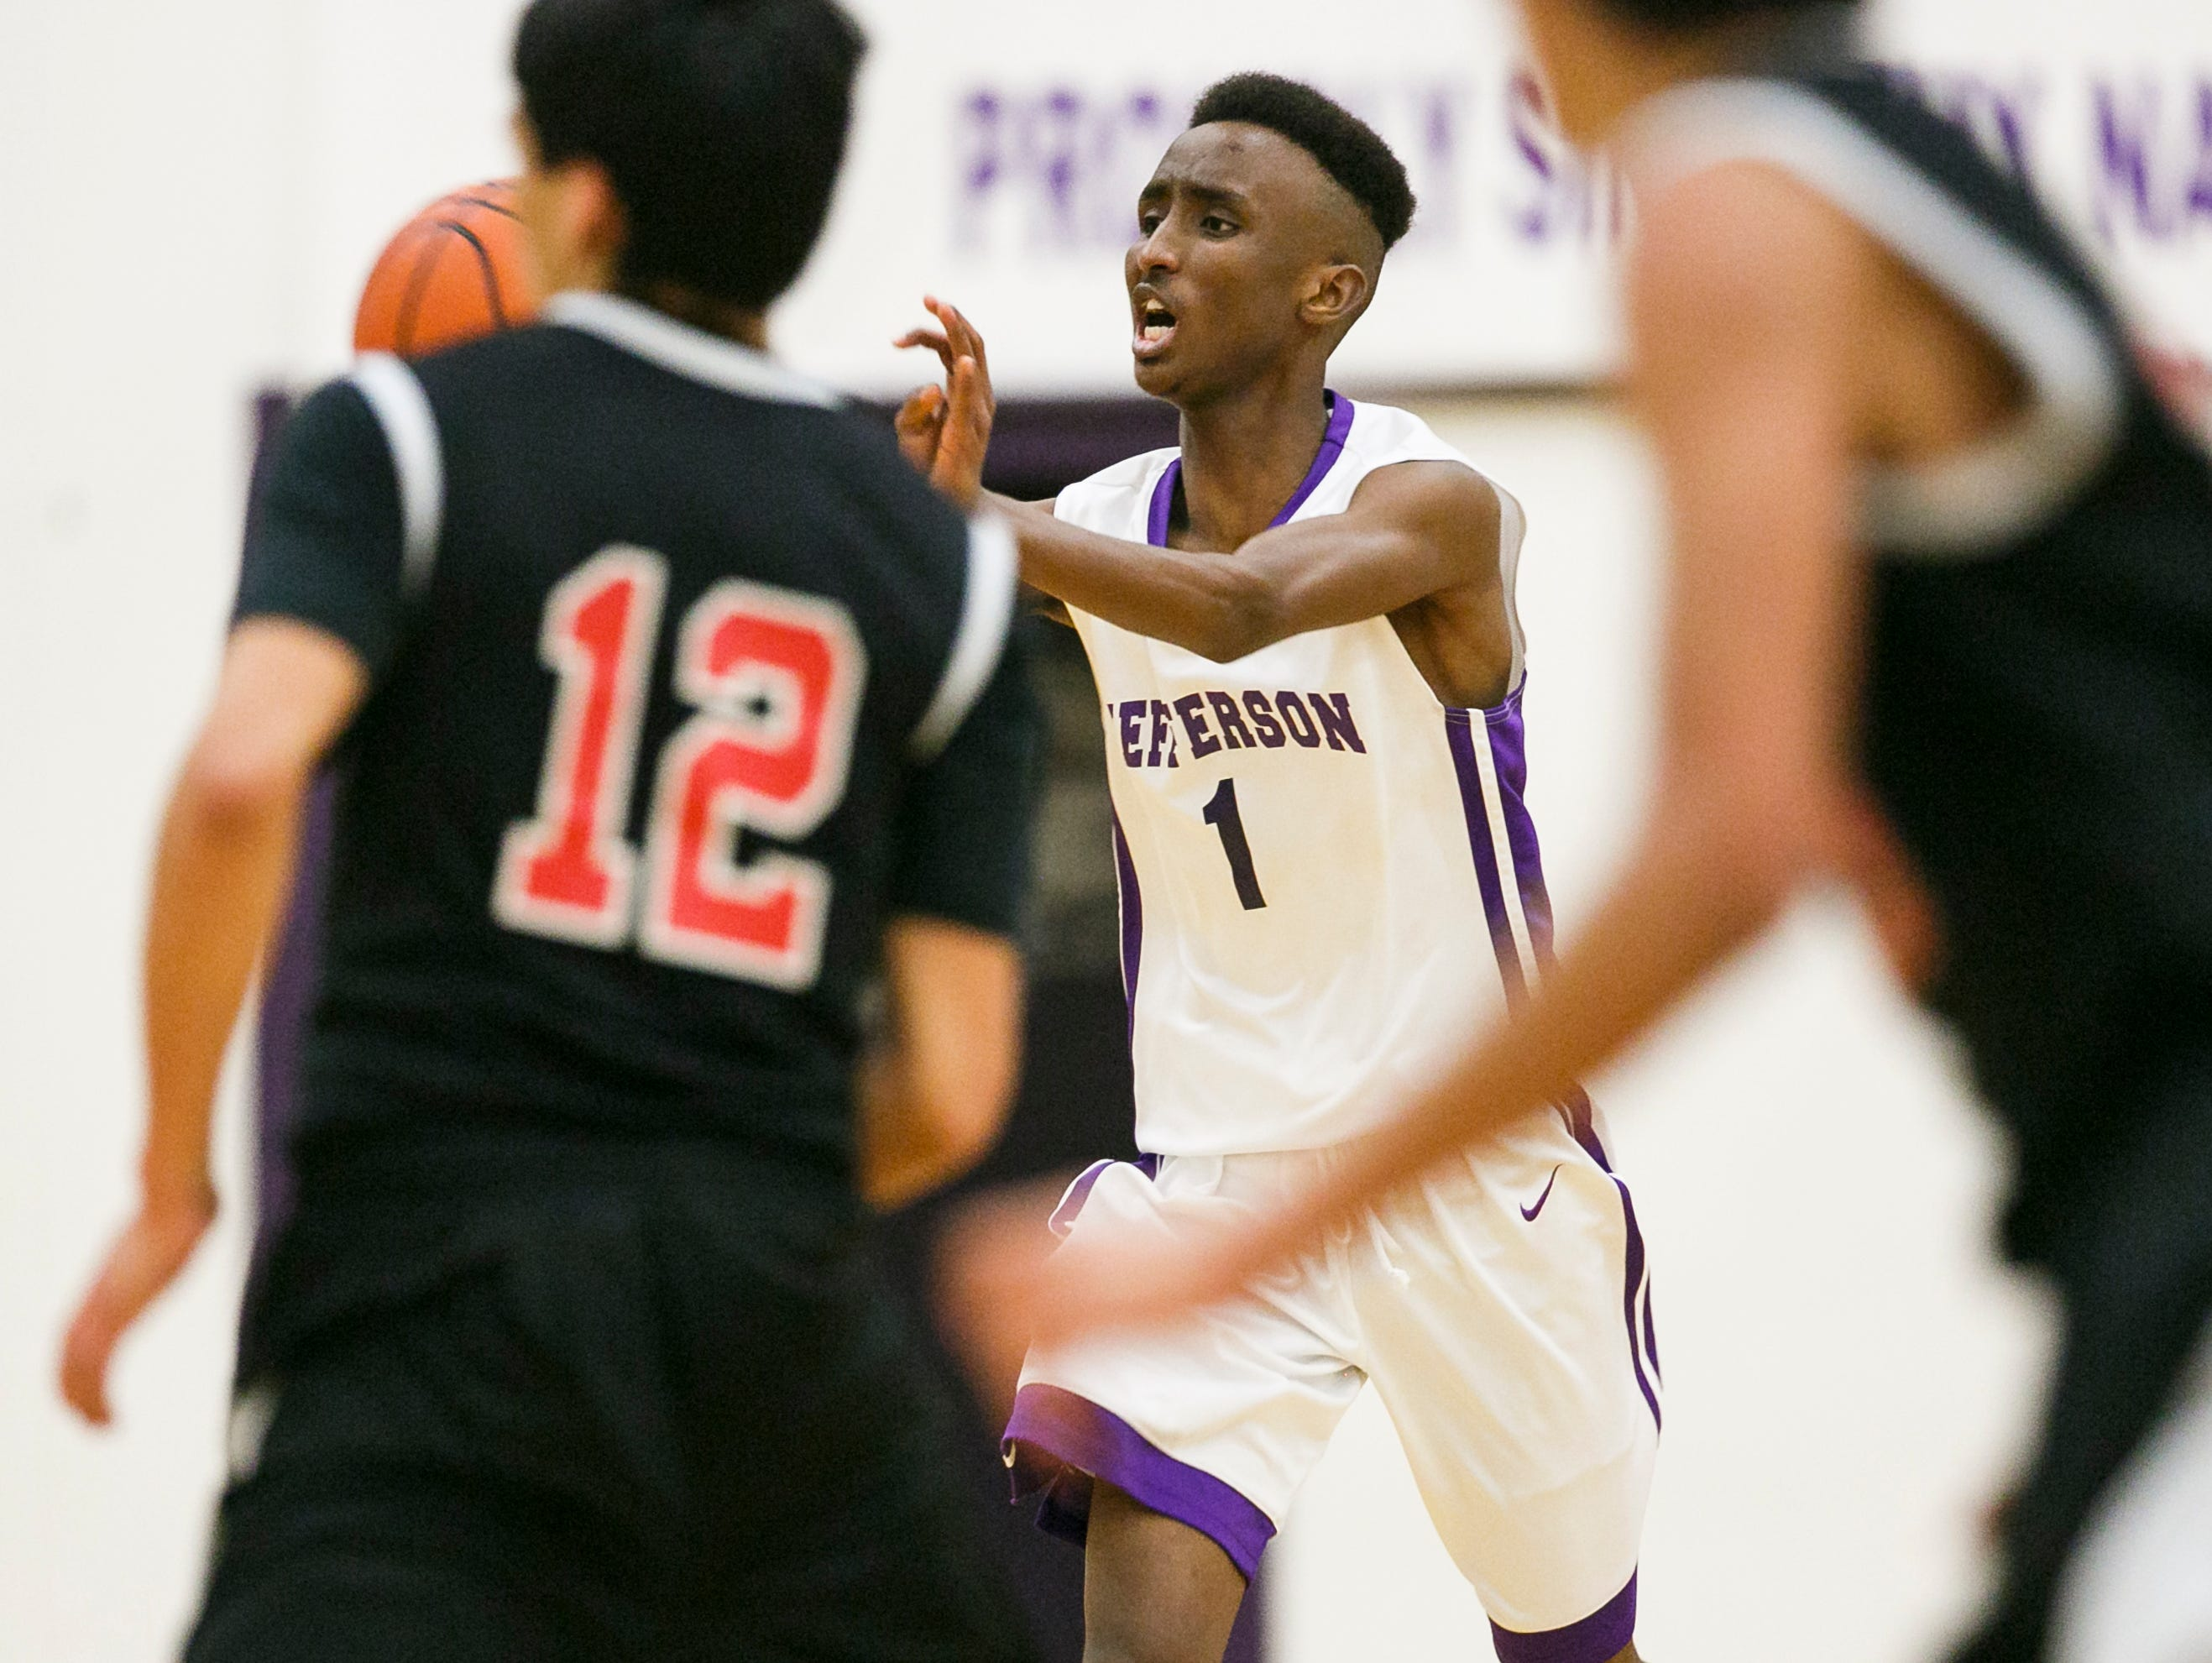 Jefferson's Abdi Ibrahim looks for an open teammate in a game against Chemawa on Thursday, Feb. 2, 2017, at Jefferson High School. Chemawa won the game 58-52, moving to 2-7 in the PacWest and 3-12 overall while Jefferson fell to 5-5 in the PacWest and 7-12 overall.